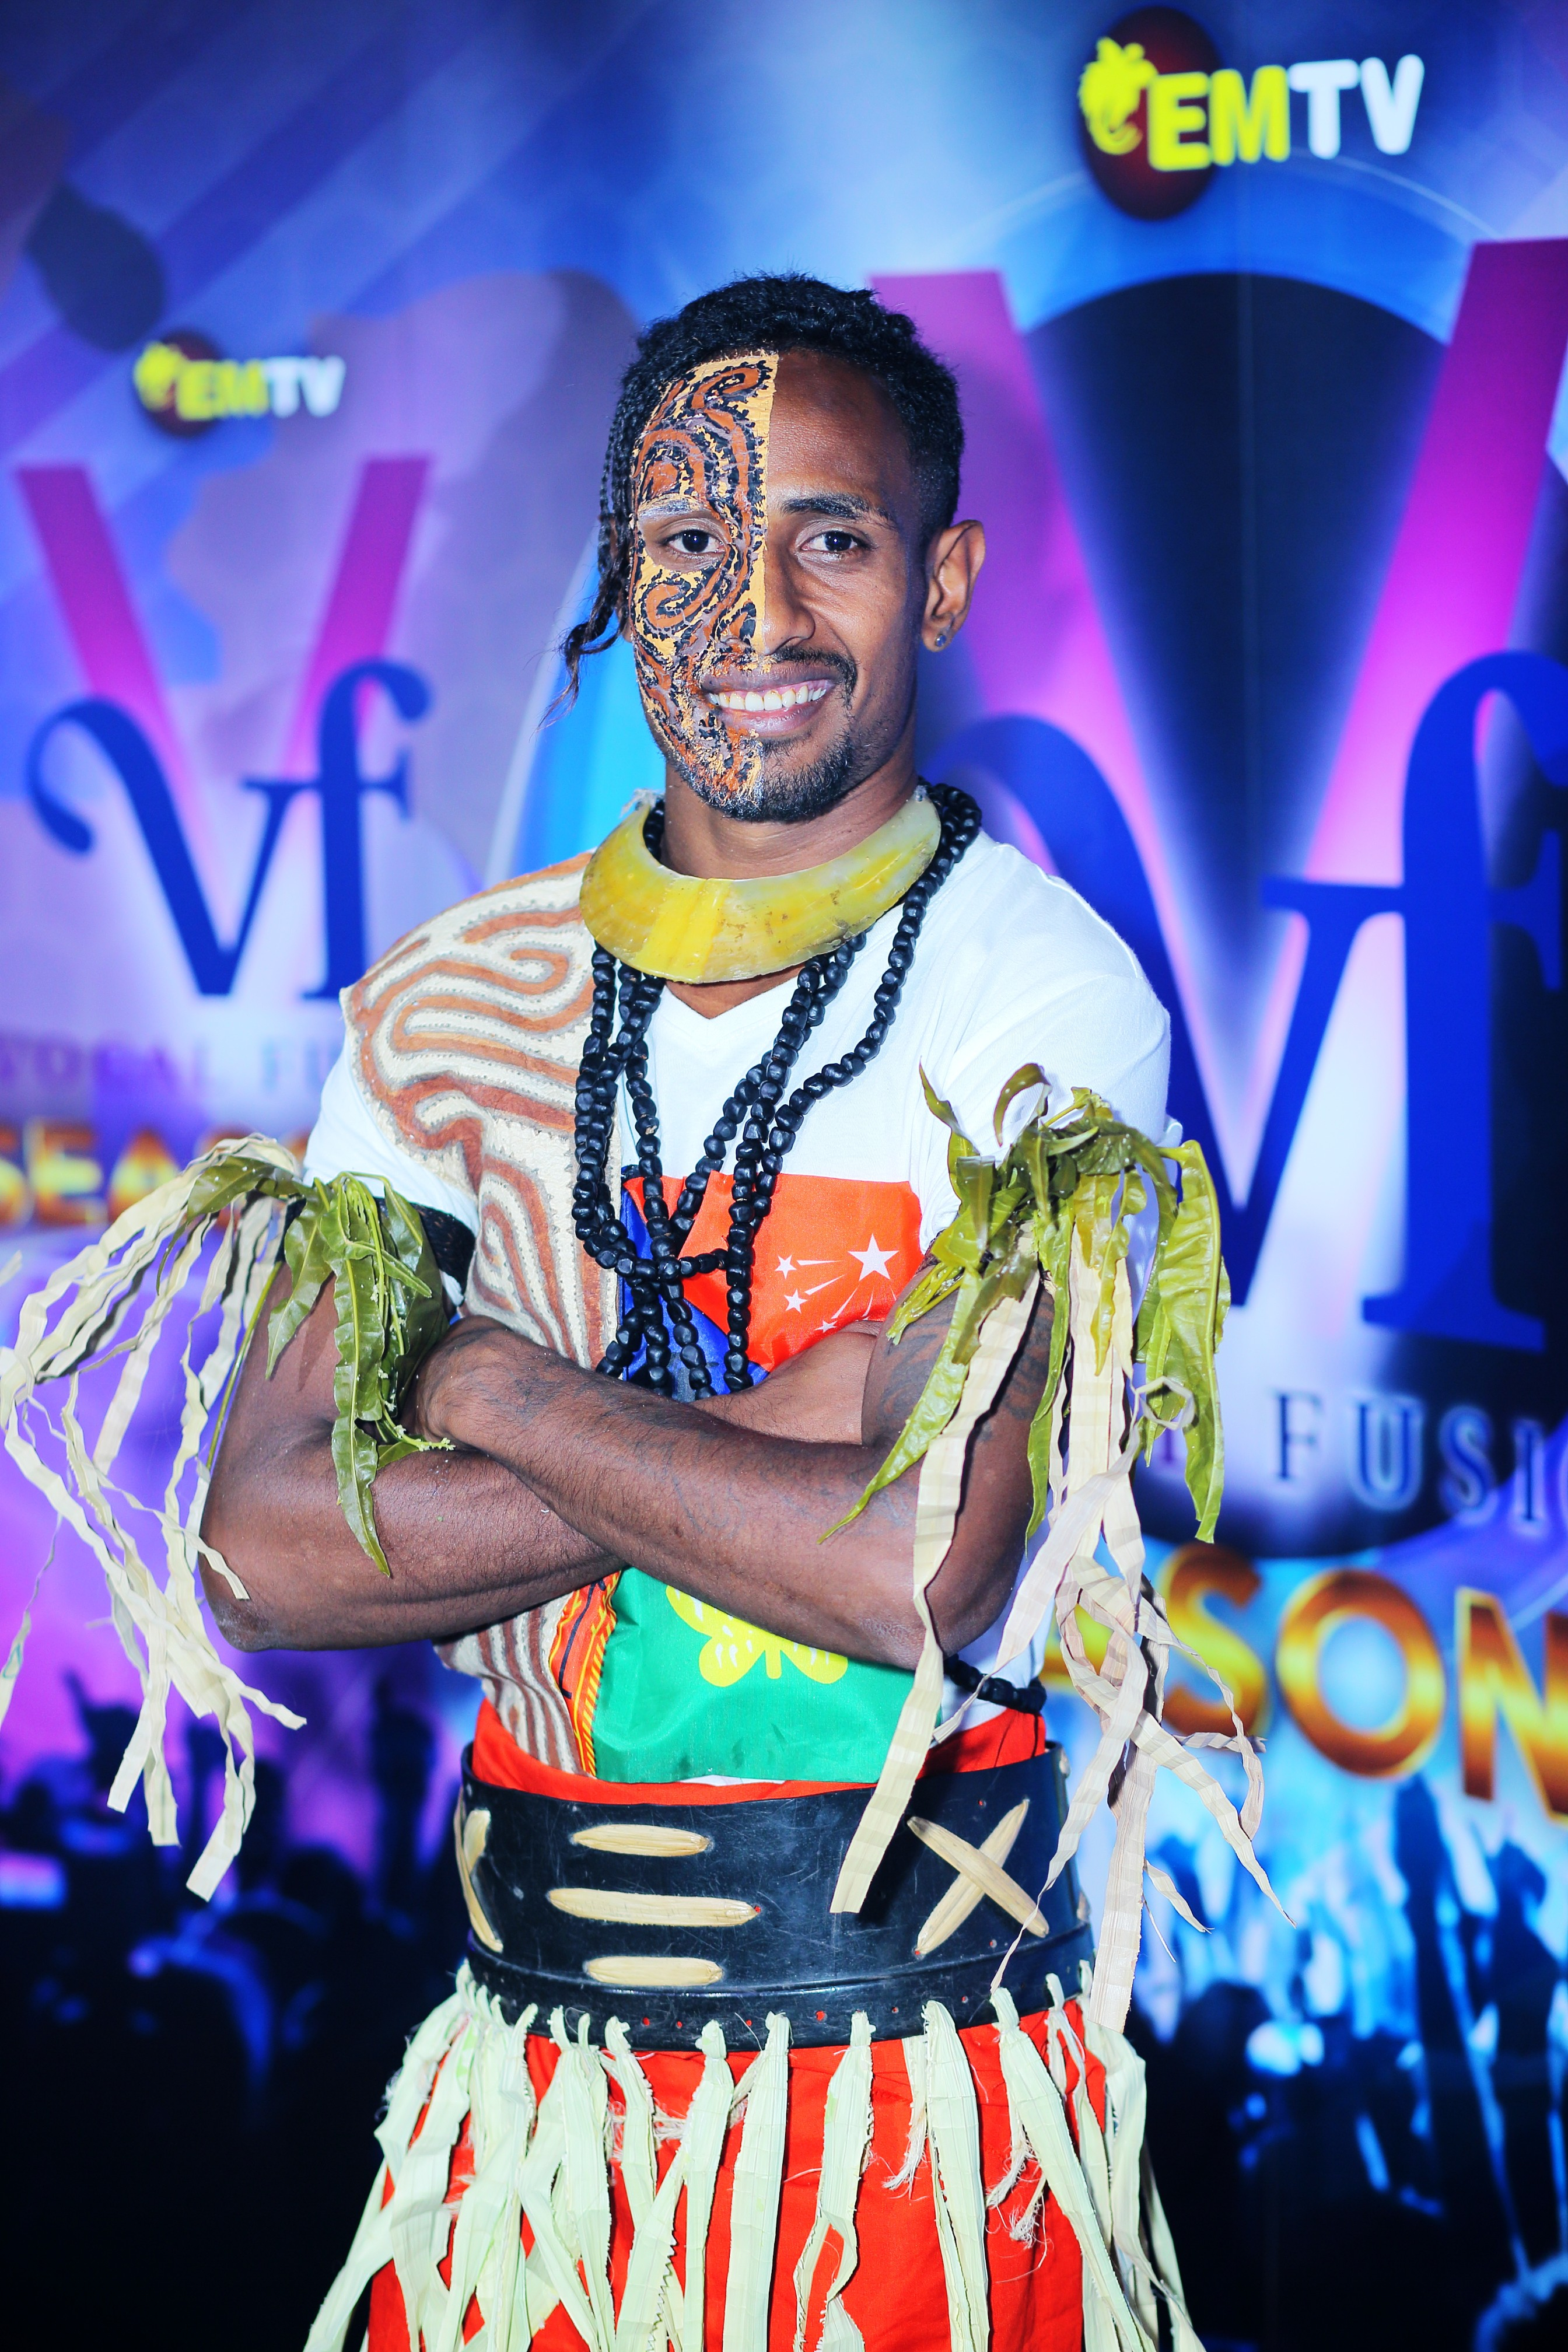 Rava Gandari hails from the Central and Northern provinces and is one of the contestants from our Port Moresby audition. The 23 year old enjoys listening to RnB music and says his family were the ones who pushed him into auditioning this year.